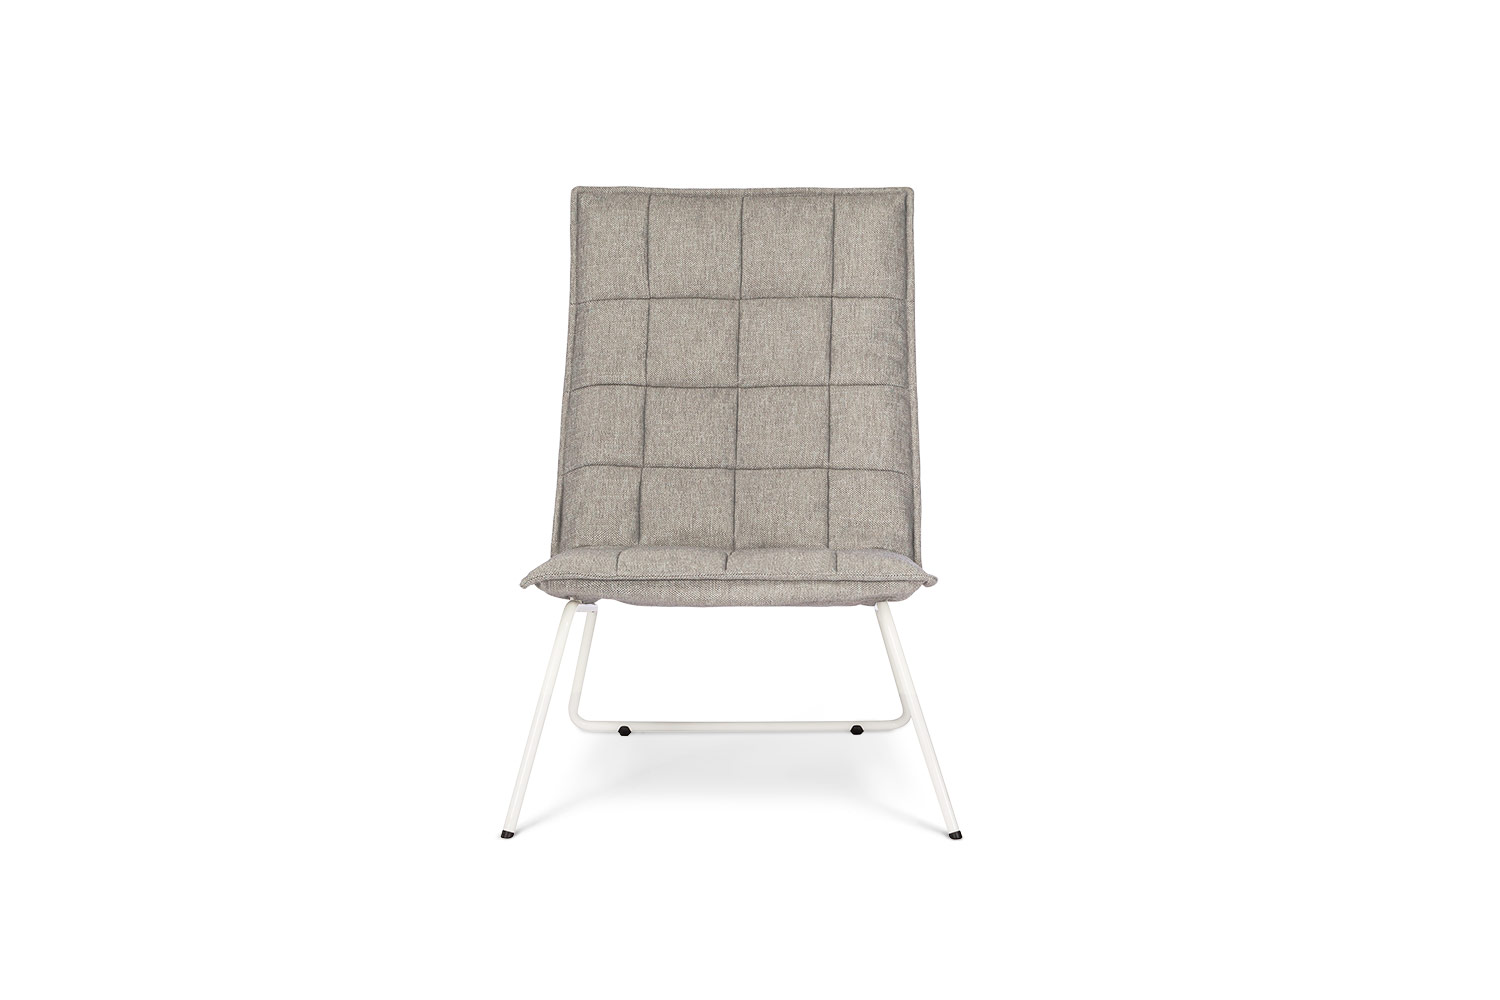 In picture Ibis Chair; fabric: Solution 60; leg: white.